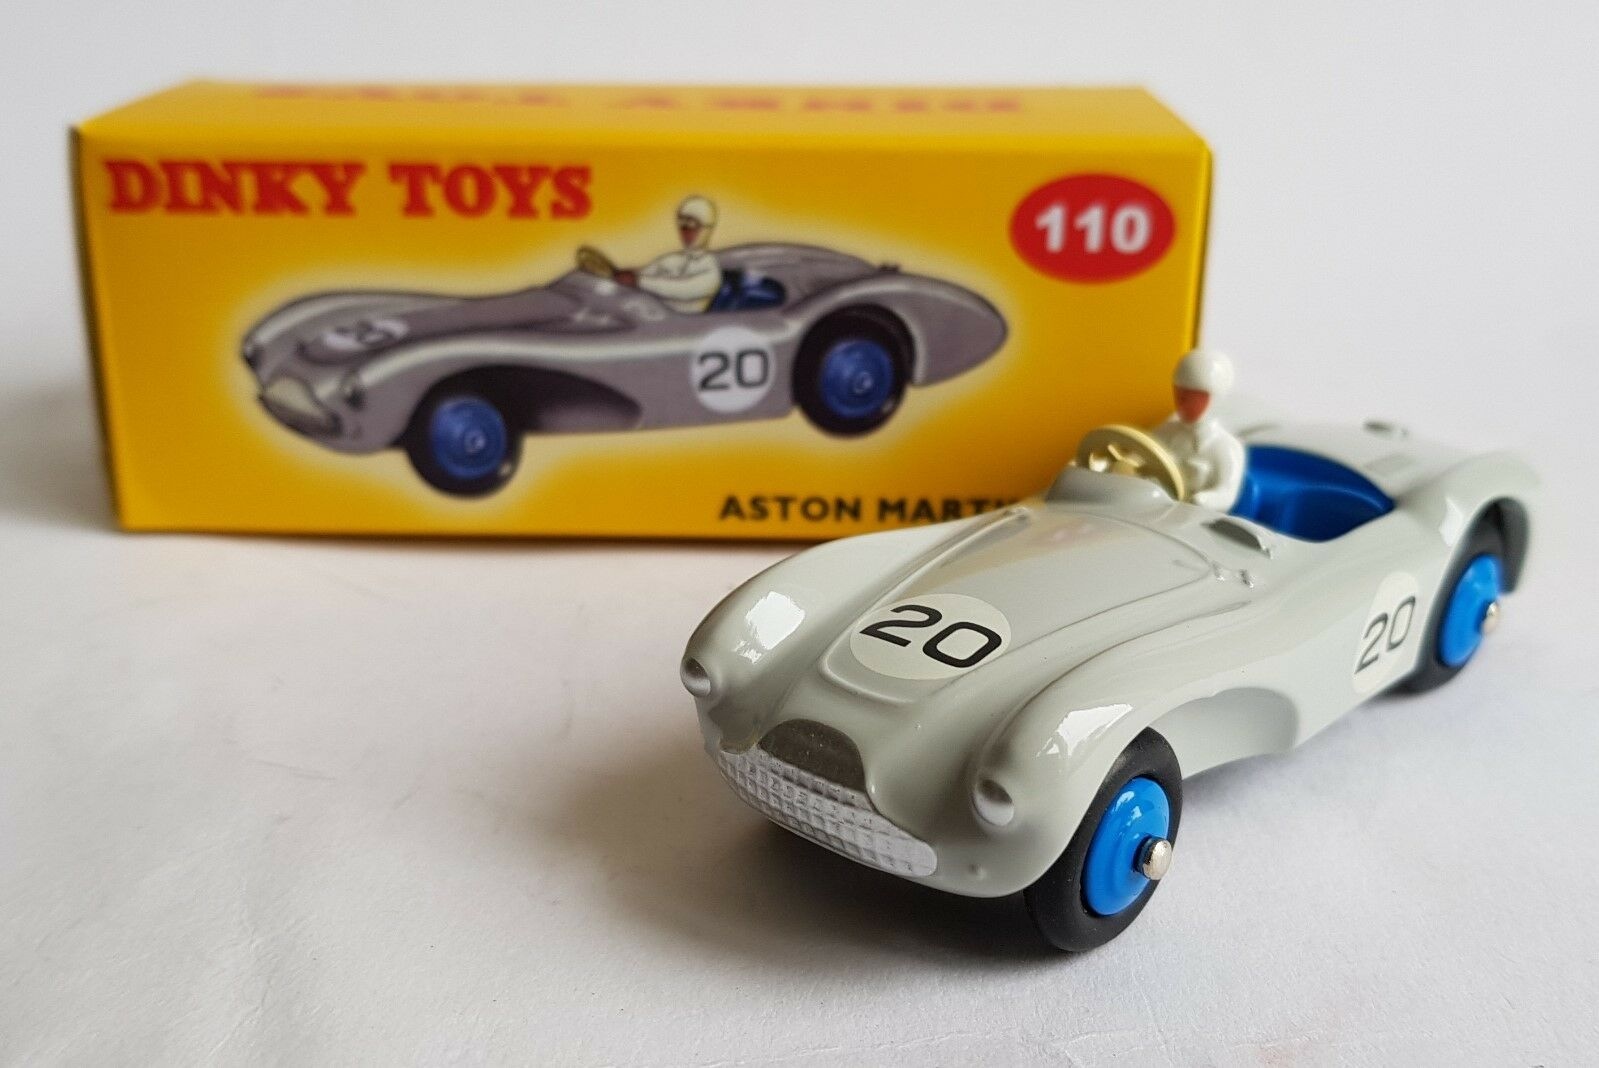 DeAgostini   Dinky Toys No. 110, Aston Martin DB 3S, - Superb Mint.